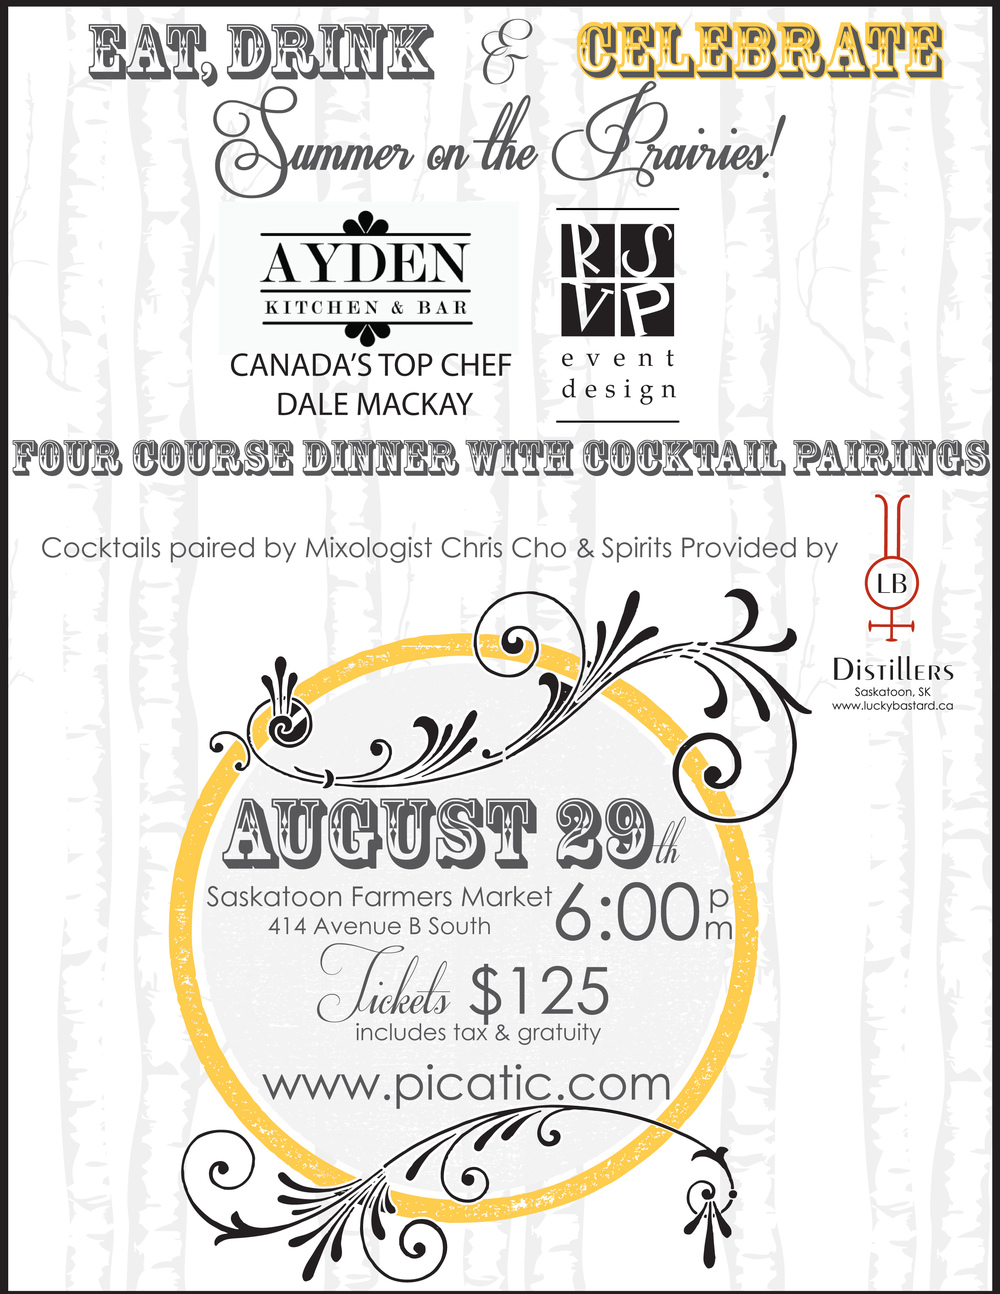 2013-08-29 Eat Drink & Celebrate Summer on the Prairies.jpg